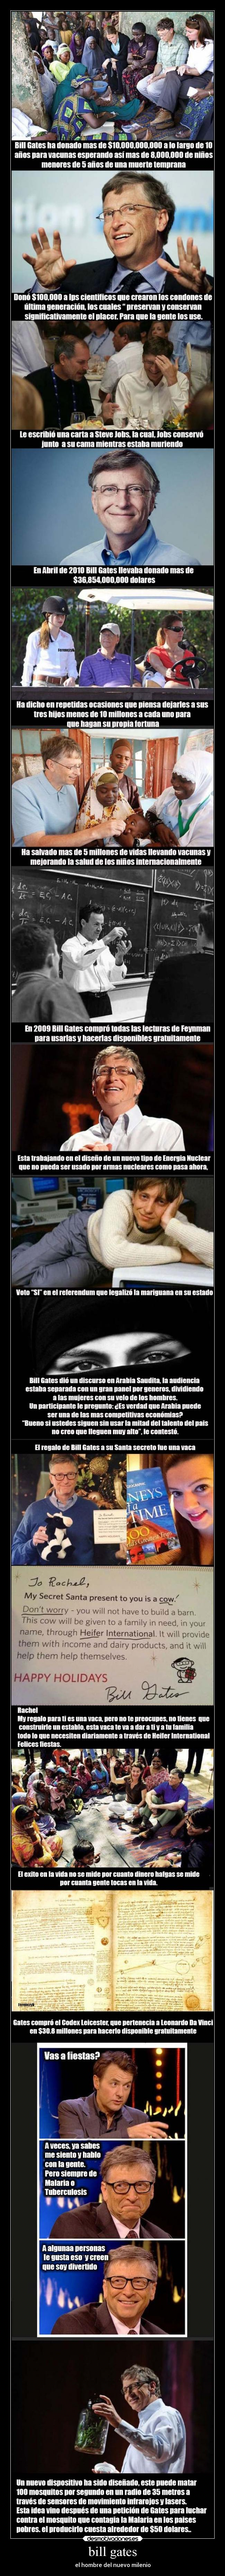 carteles internet bill gates windows desmotivaciones